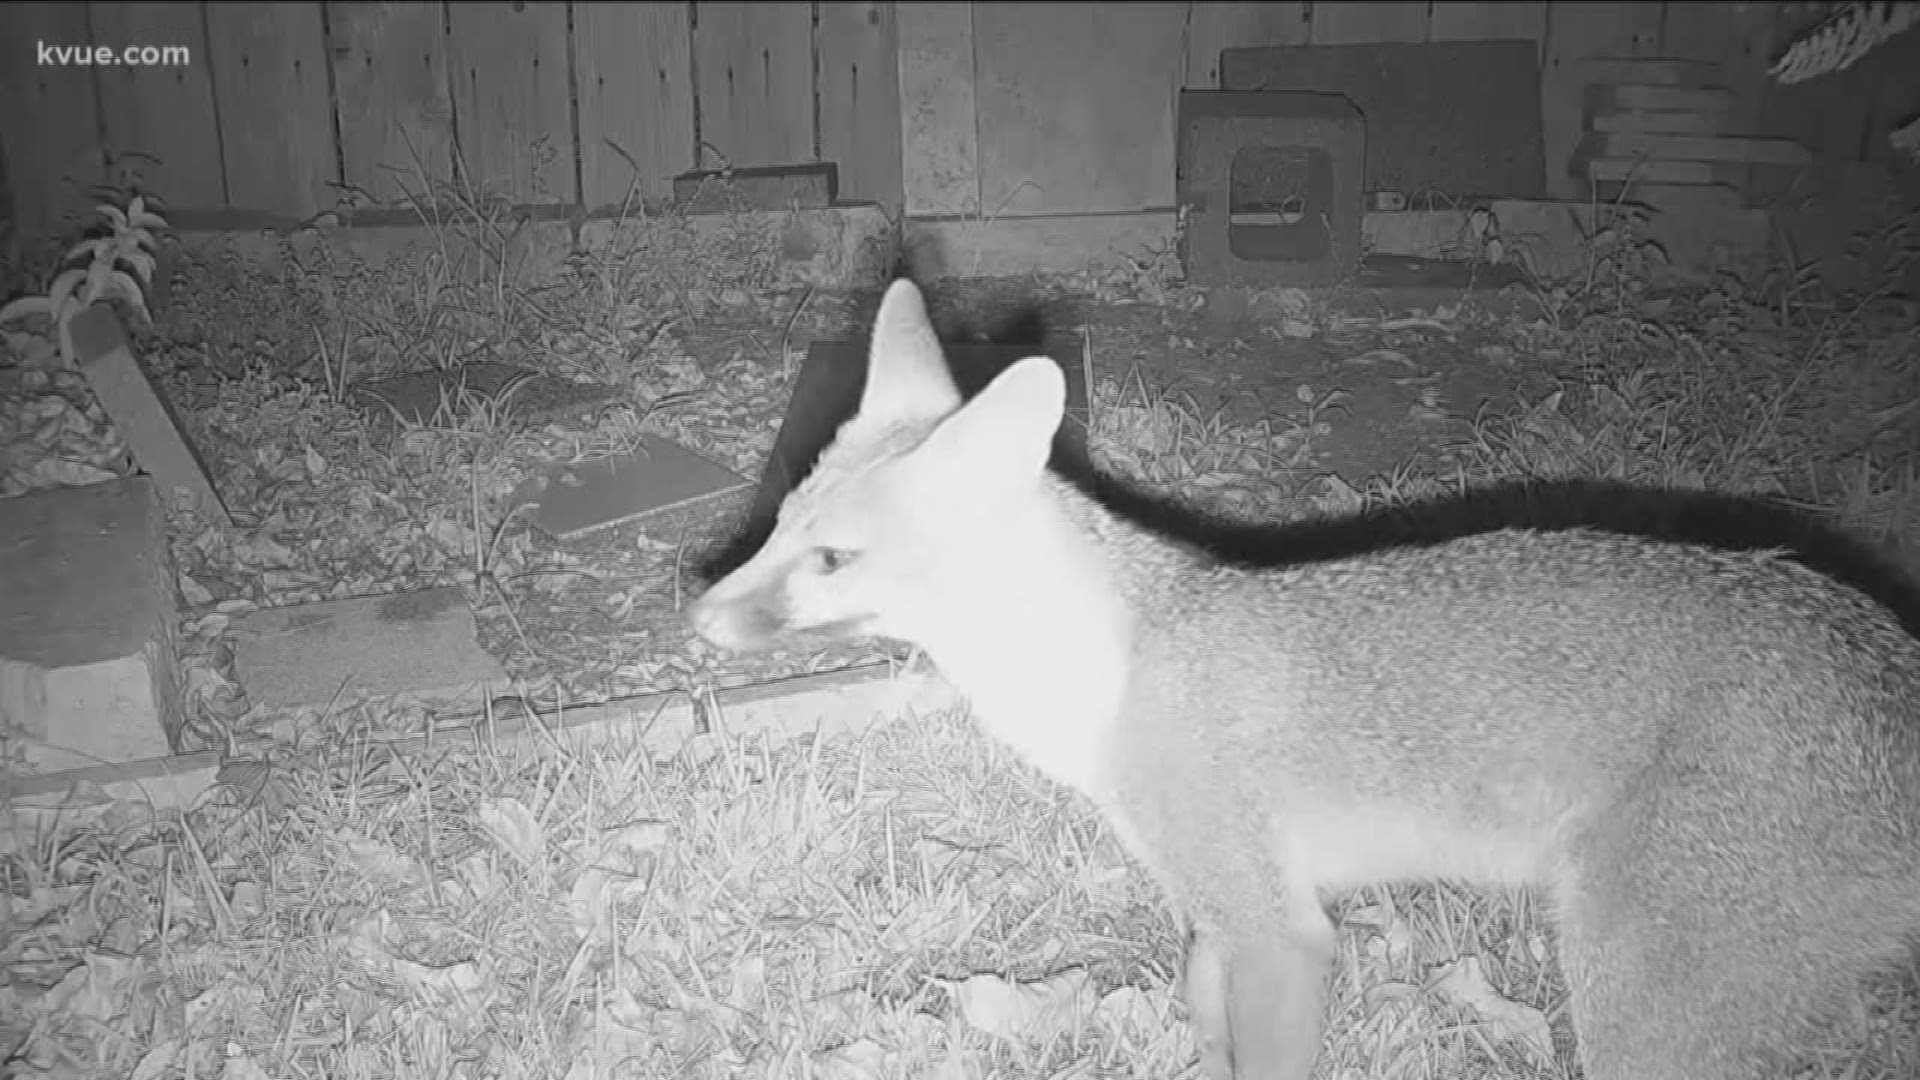 North Austin Resident Worried About Increase Of Foxes In Neighborhood Kvue Com